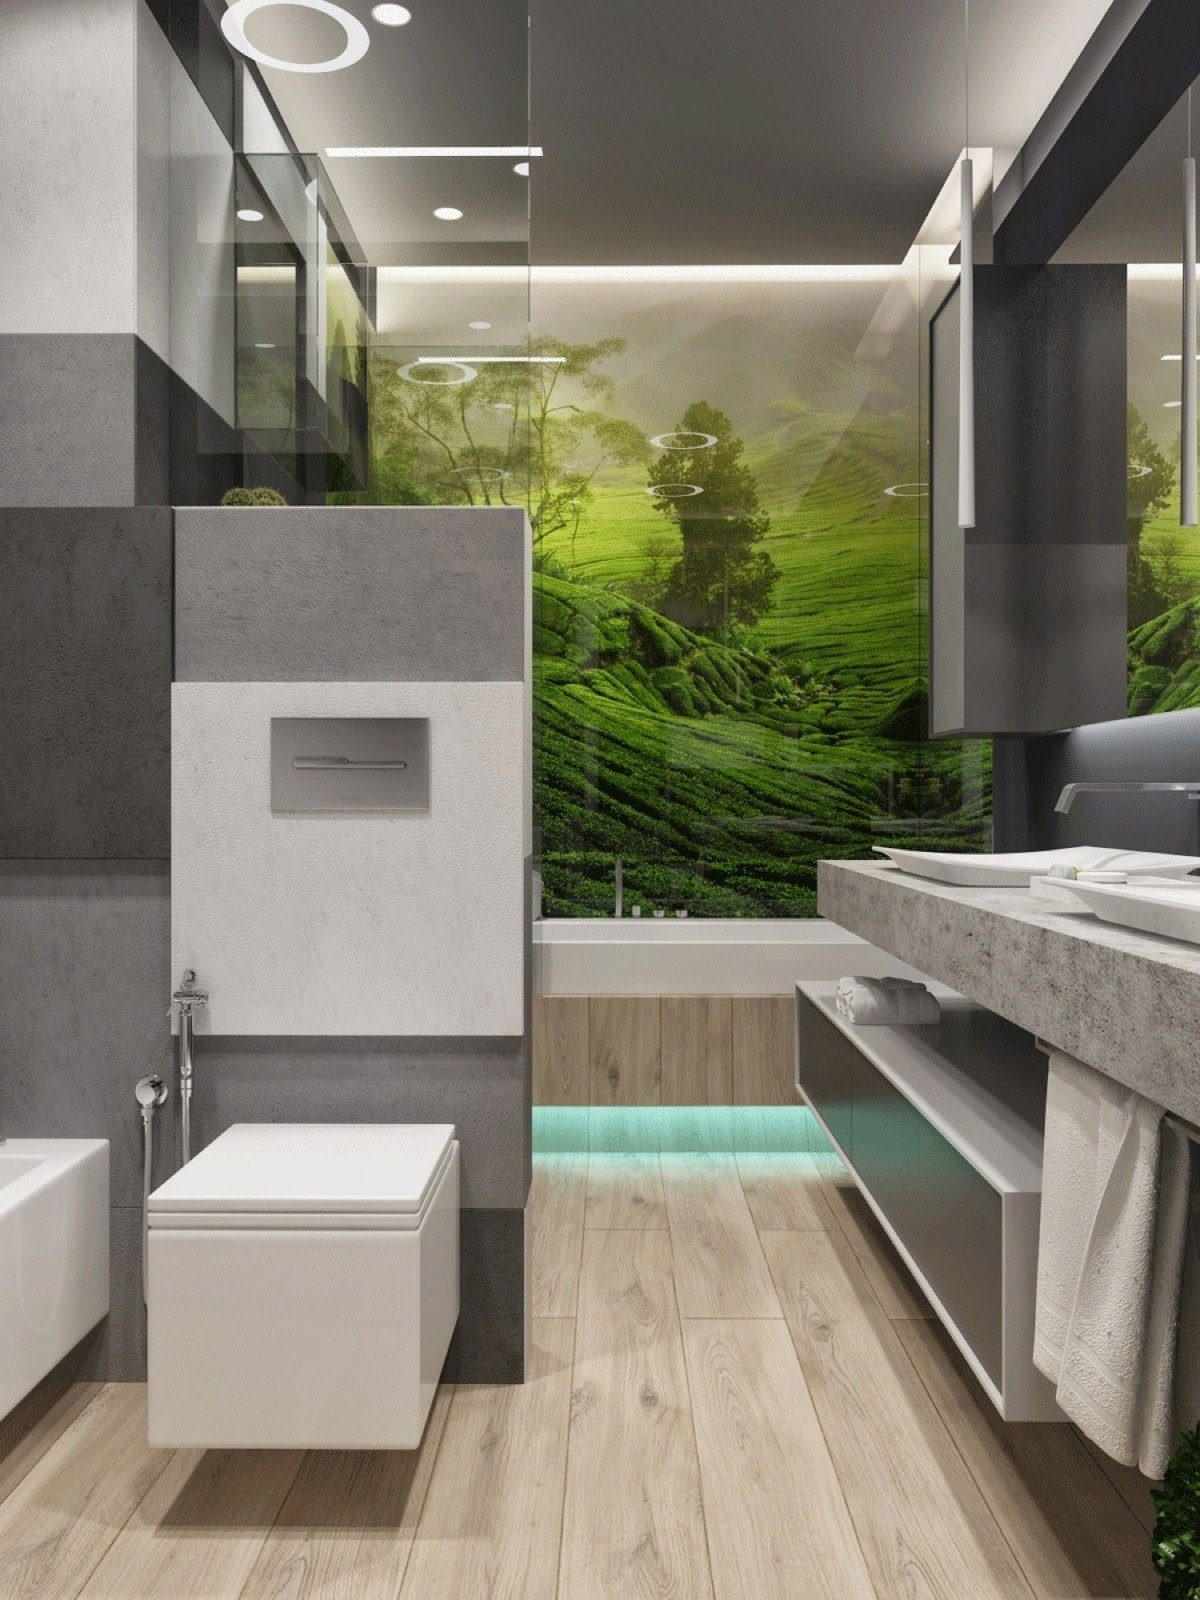 Amazing Bathroom Mural Inspiration - Two apartments with sleek grayscale interiors